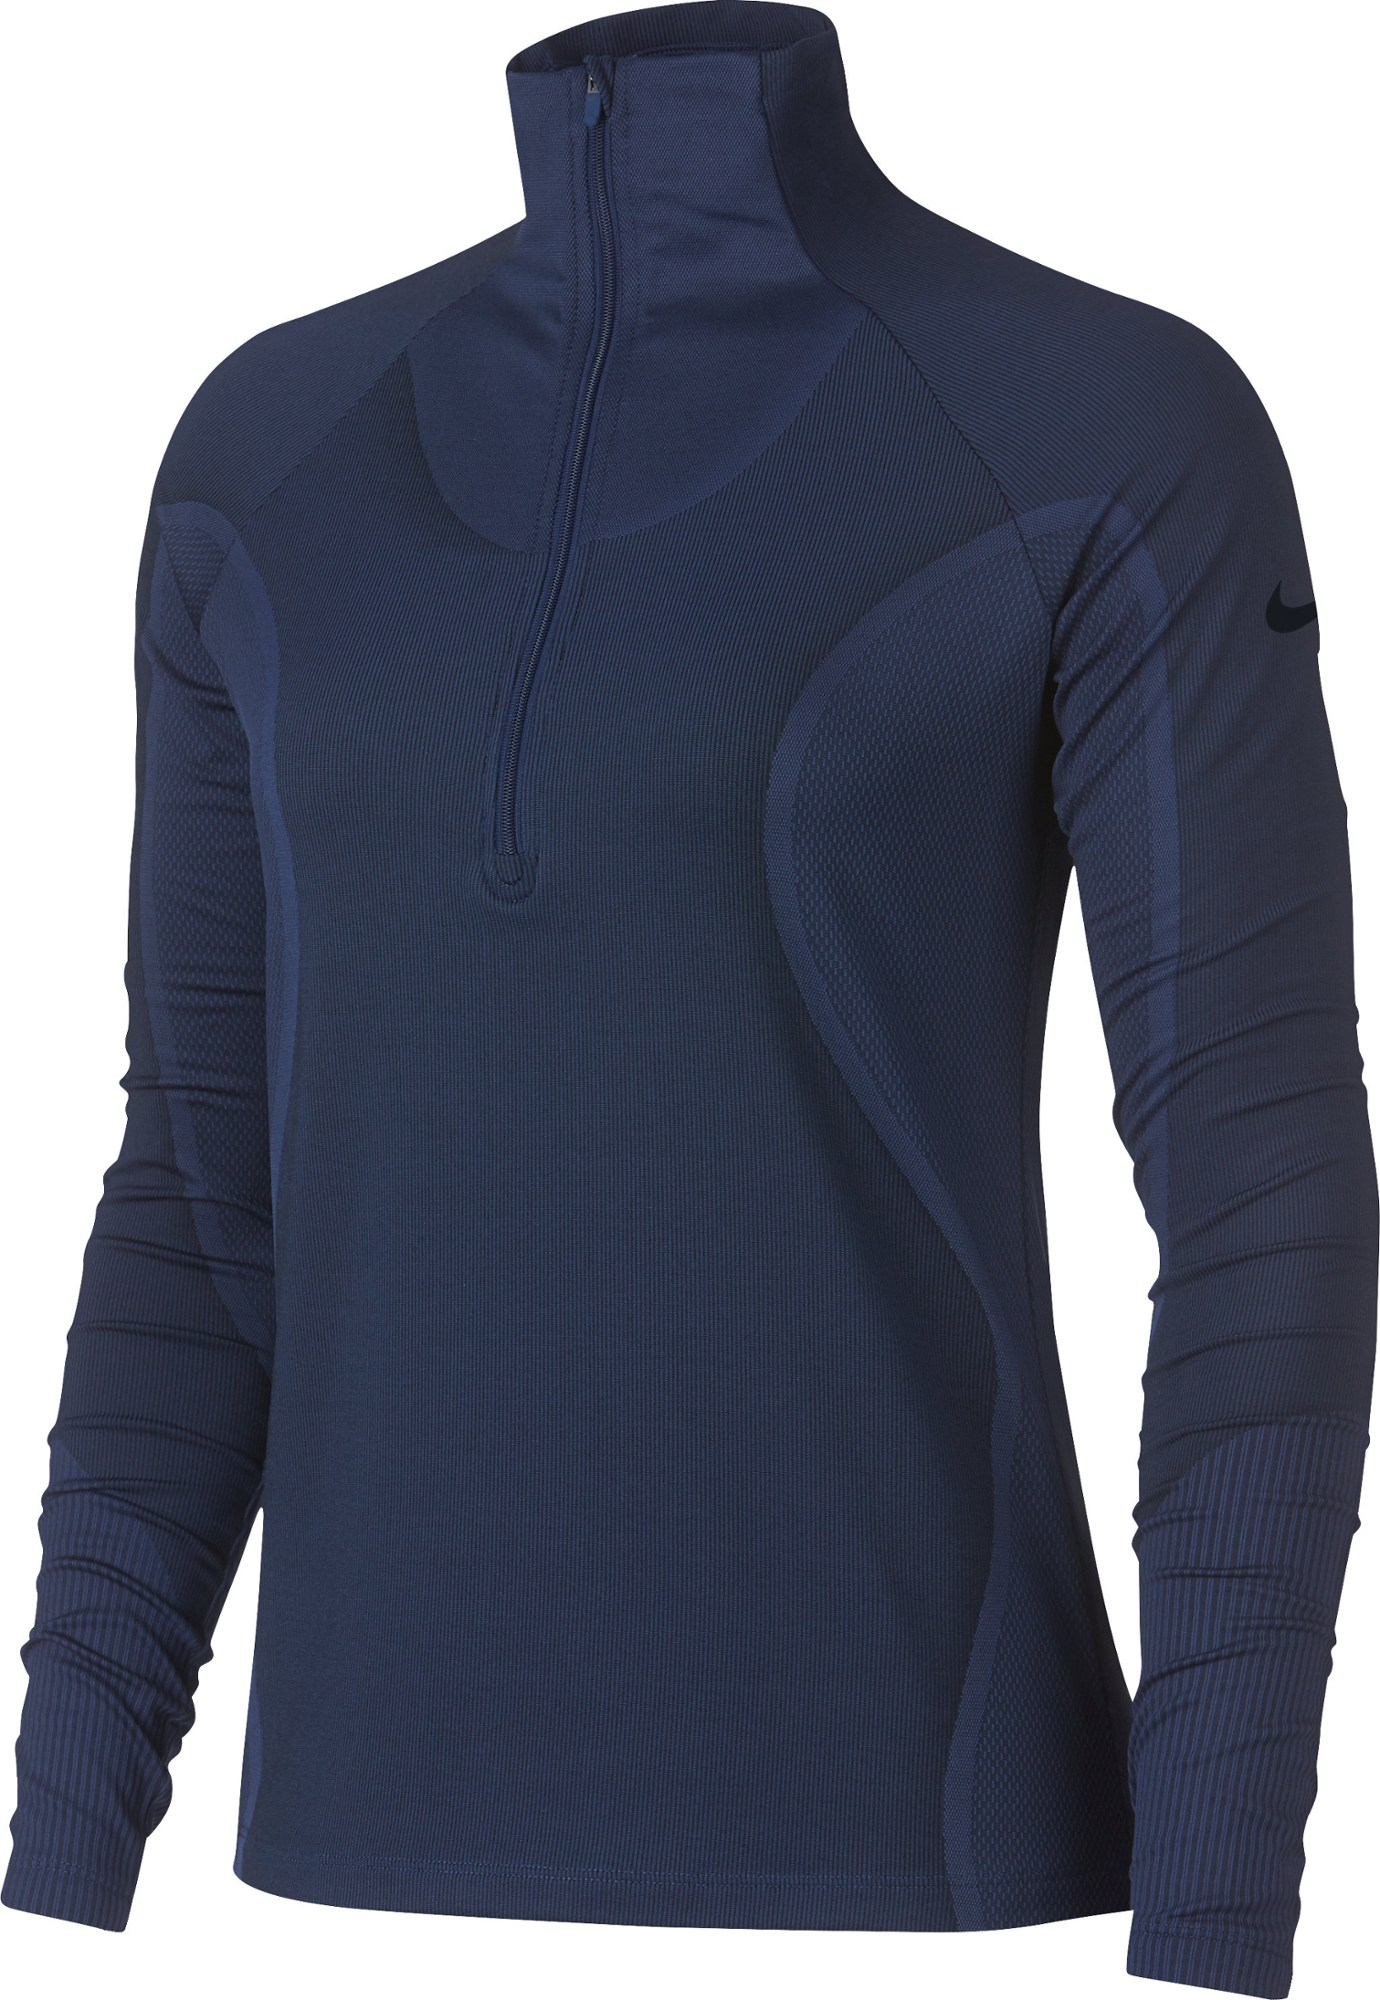 Nike Hyperwarm Engineered Half-Zip Top - Women's